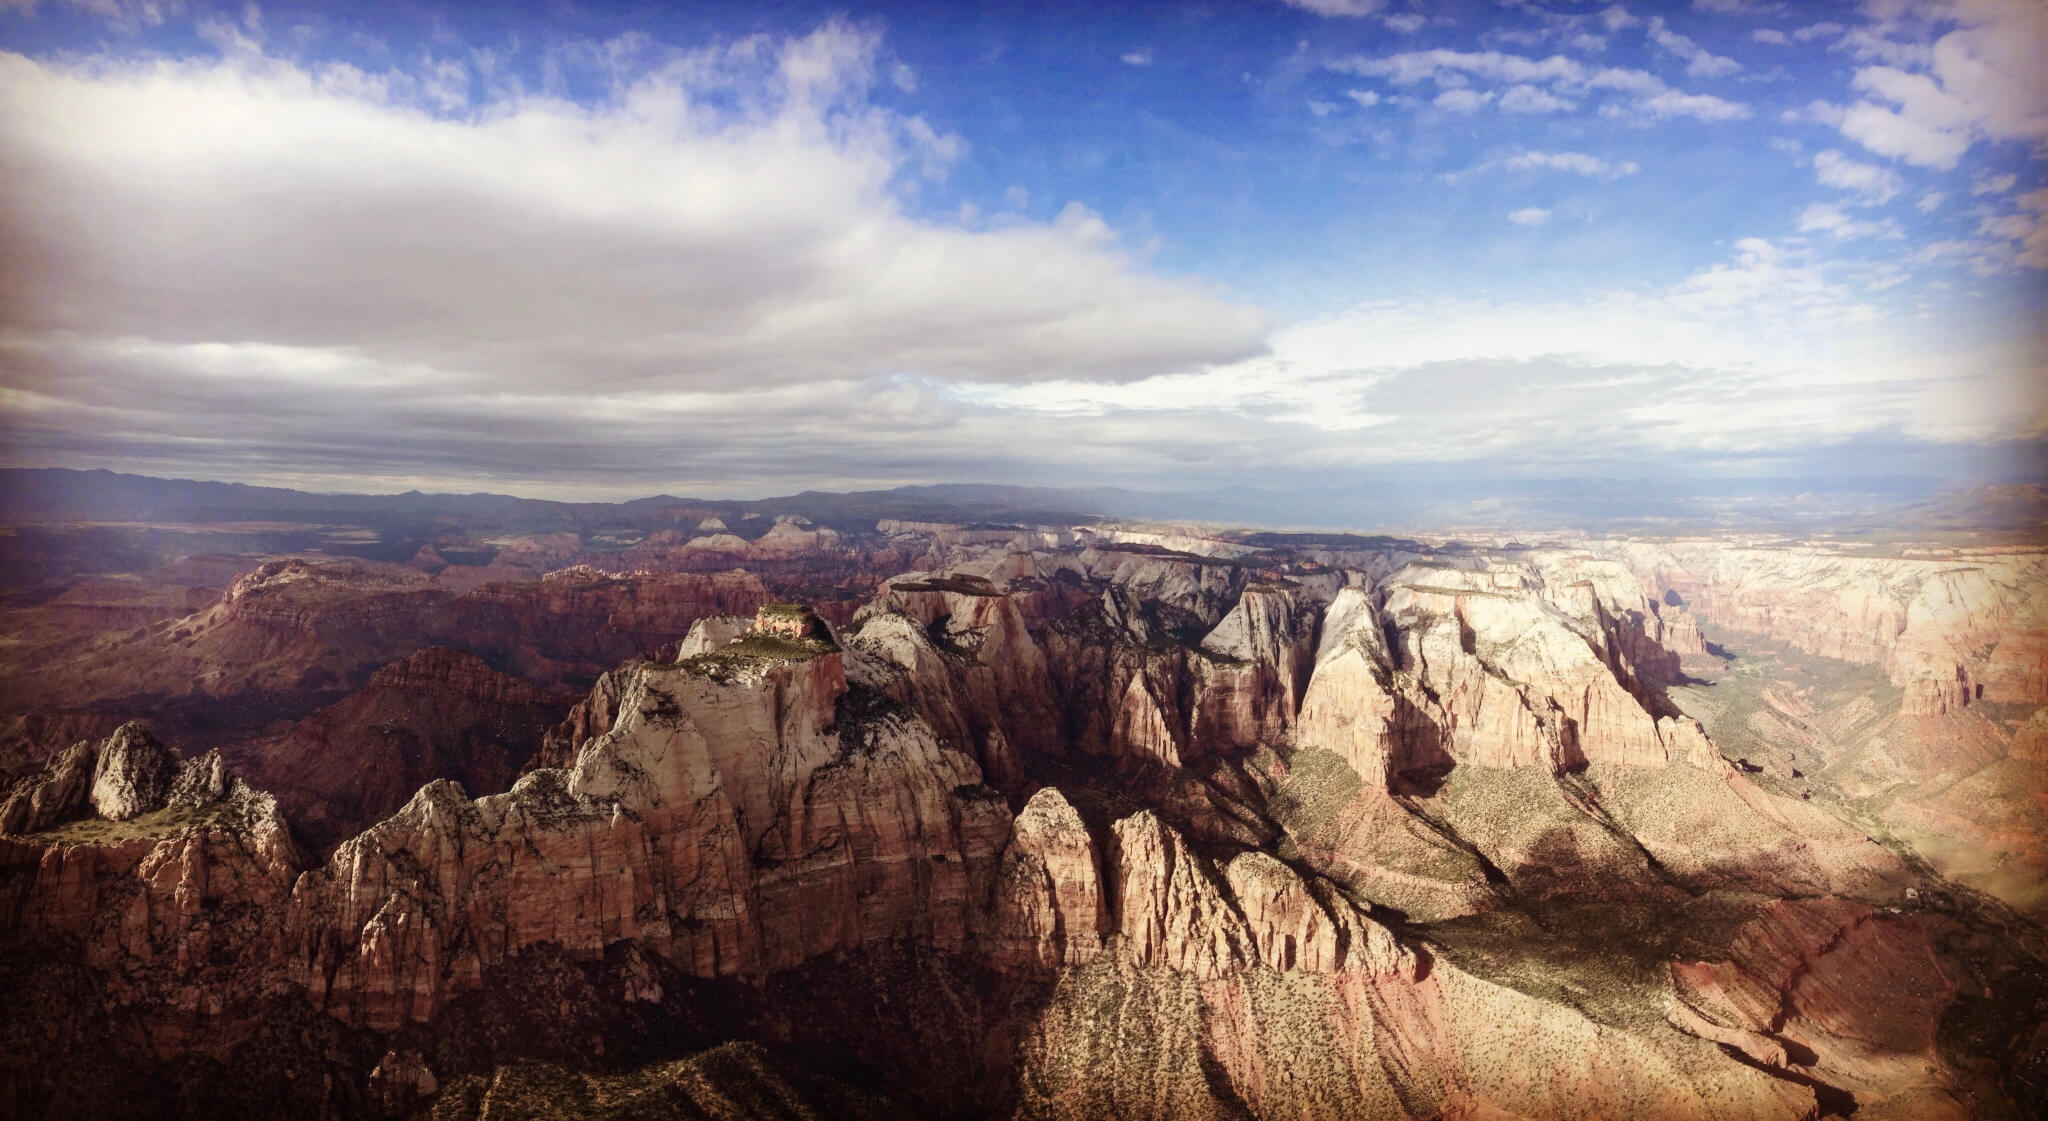 South End of Zion